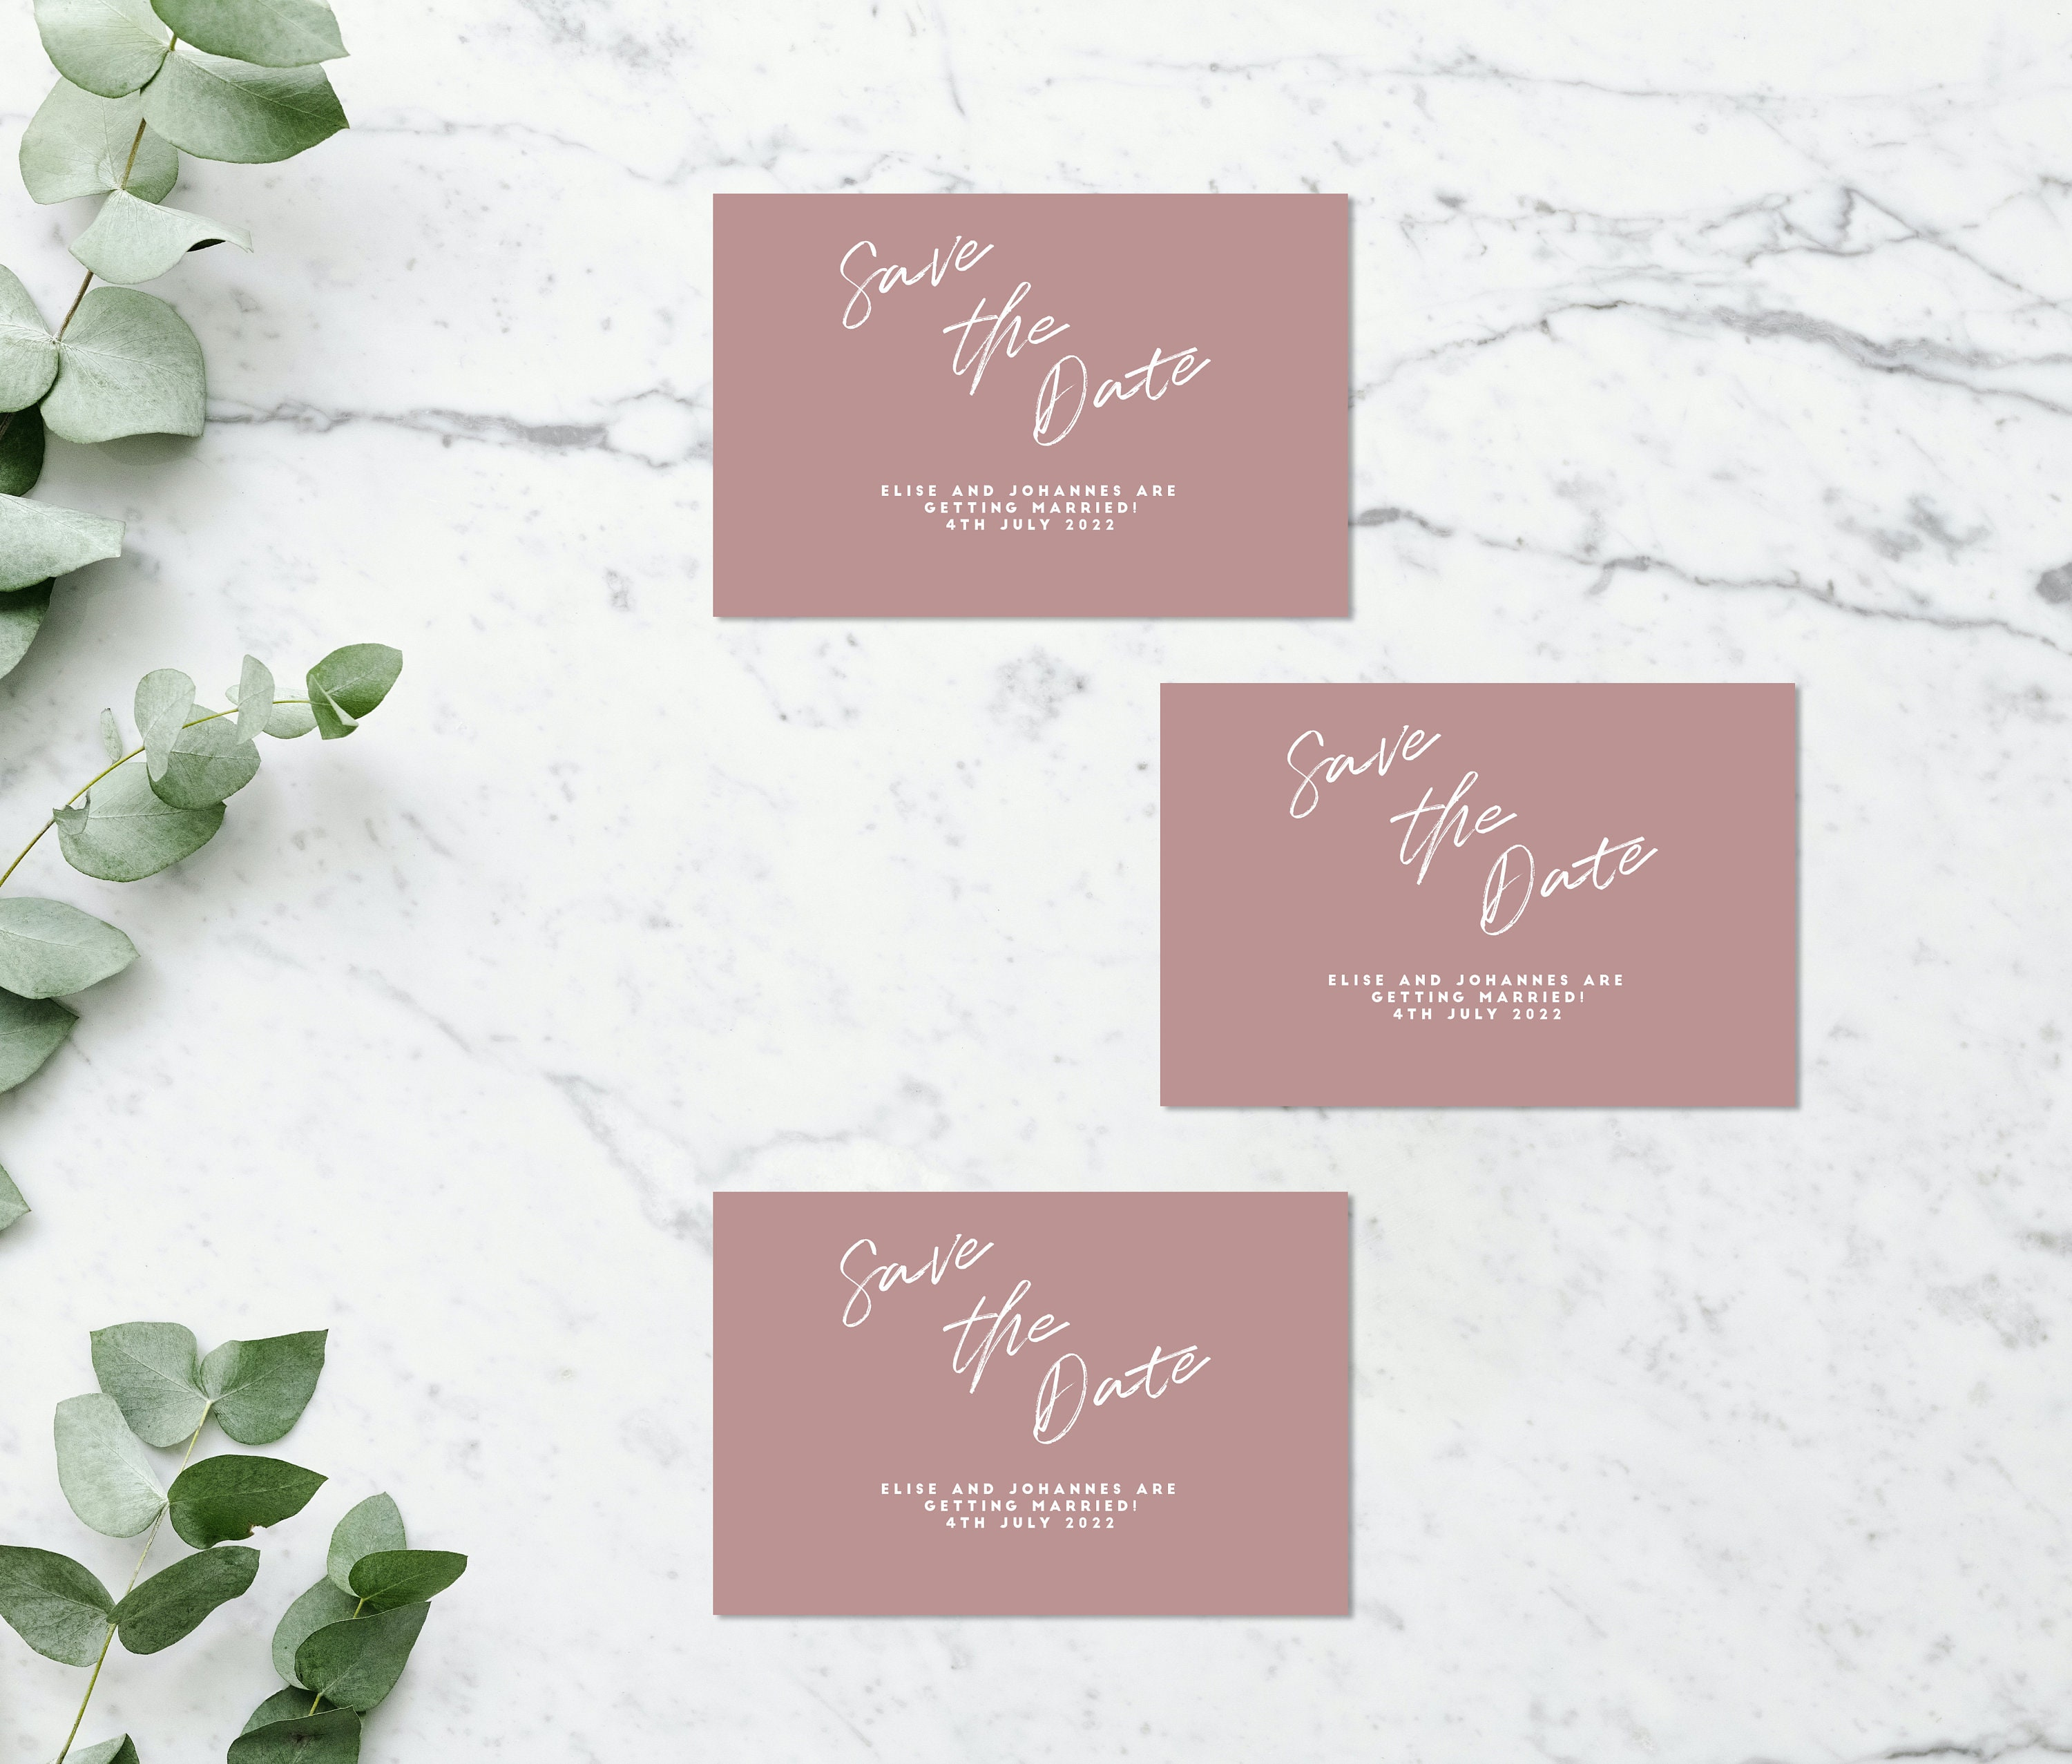 Flat lay photograph of 3 wedding save the date cards and white envelope. Each card is black and white, with headline text sitting between the two - both white and black.